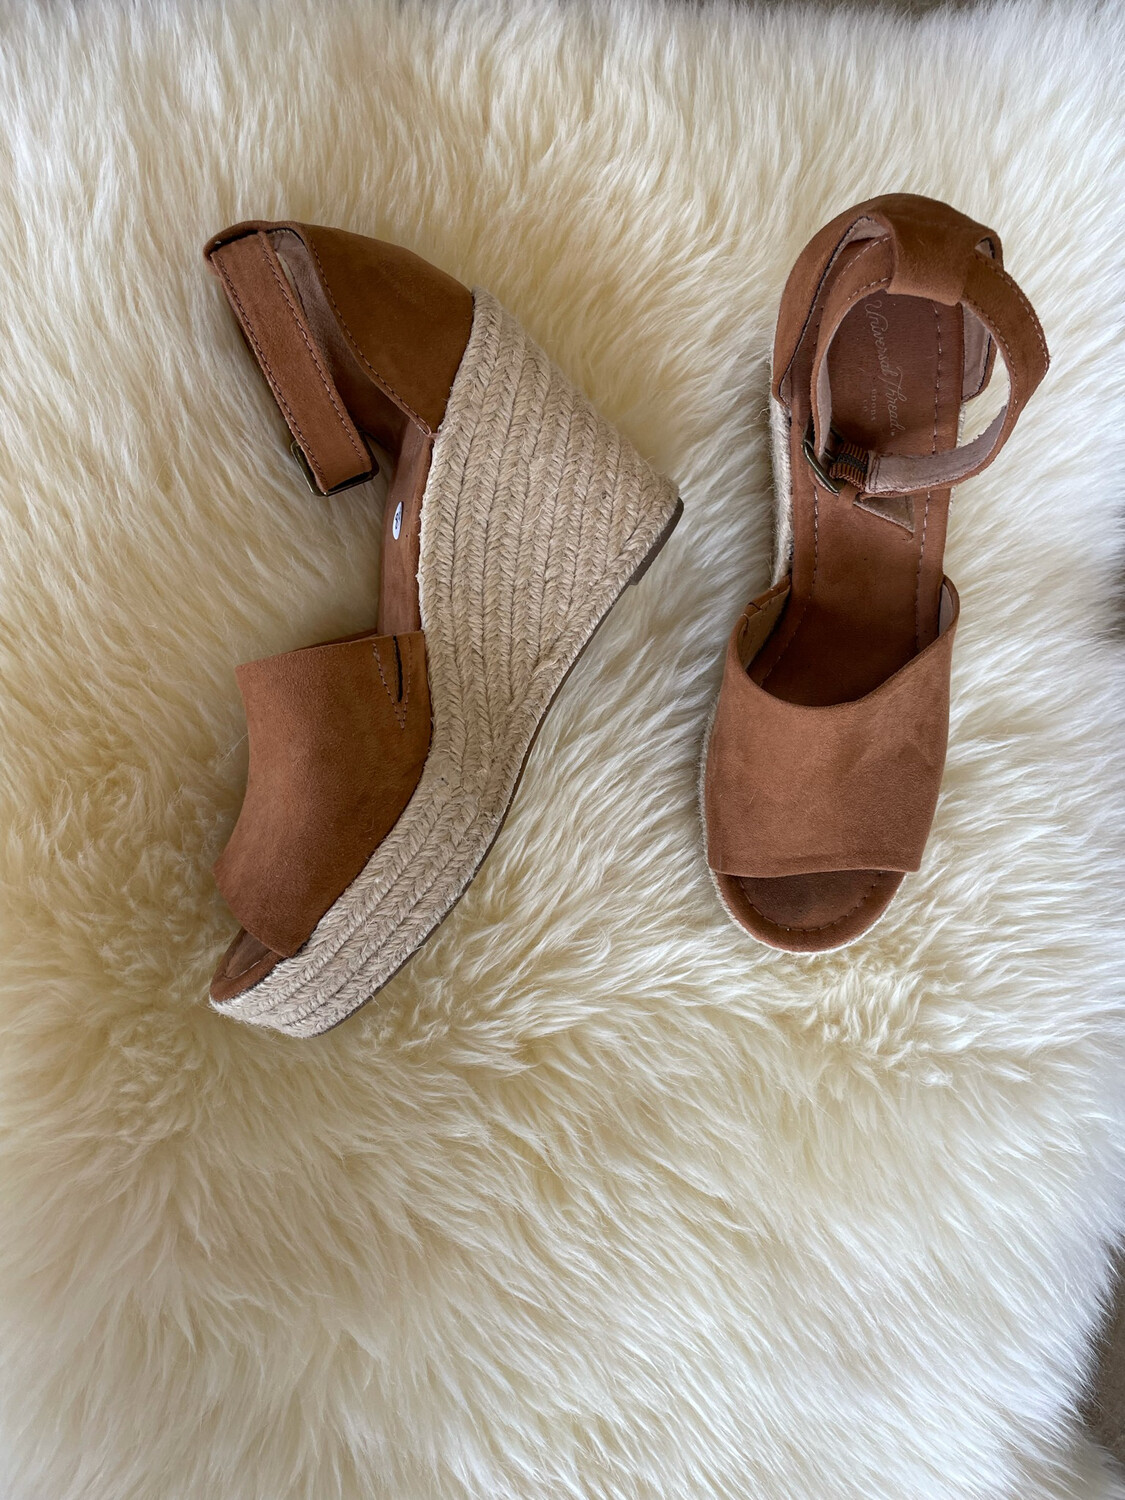 Universal Thread Brown Suede Wedges w/ Ankle Straps - Size 7.5